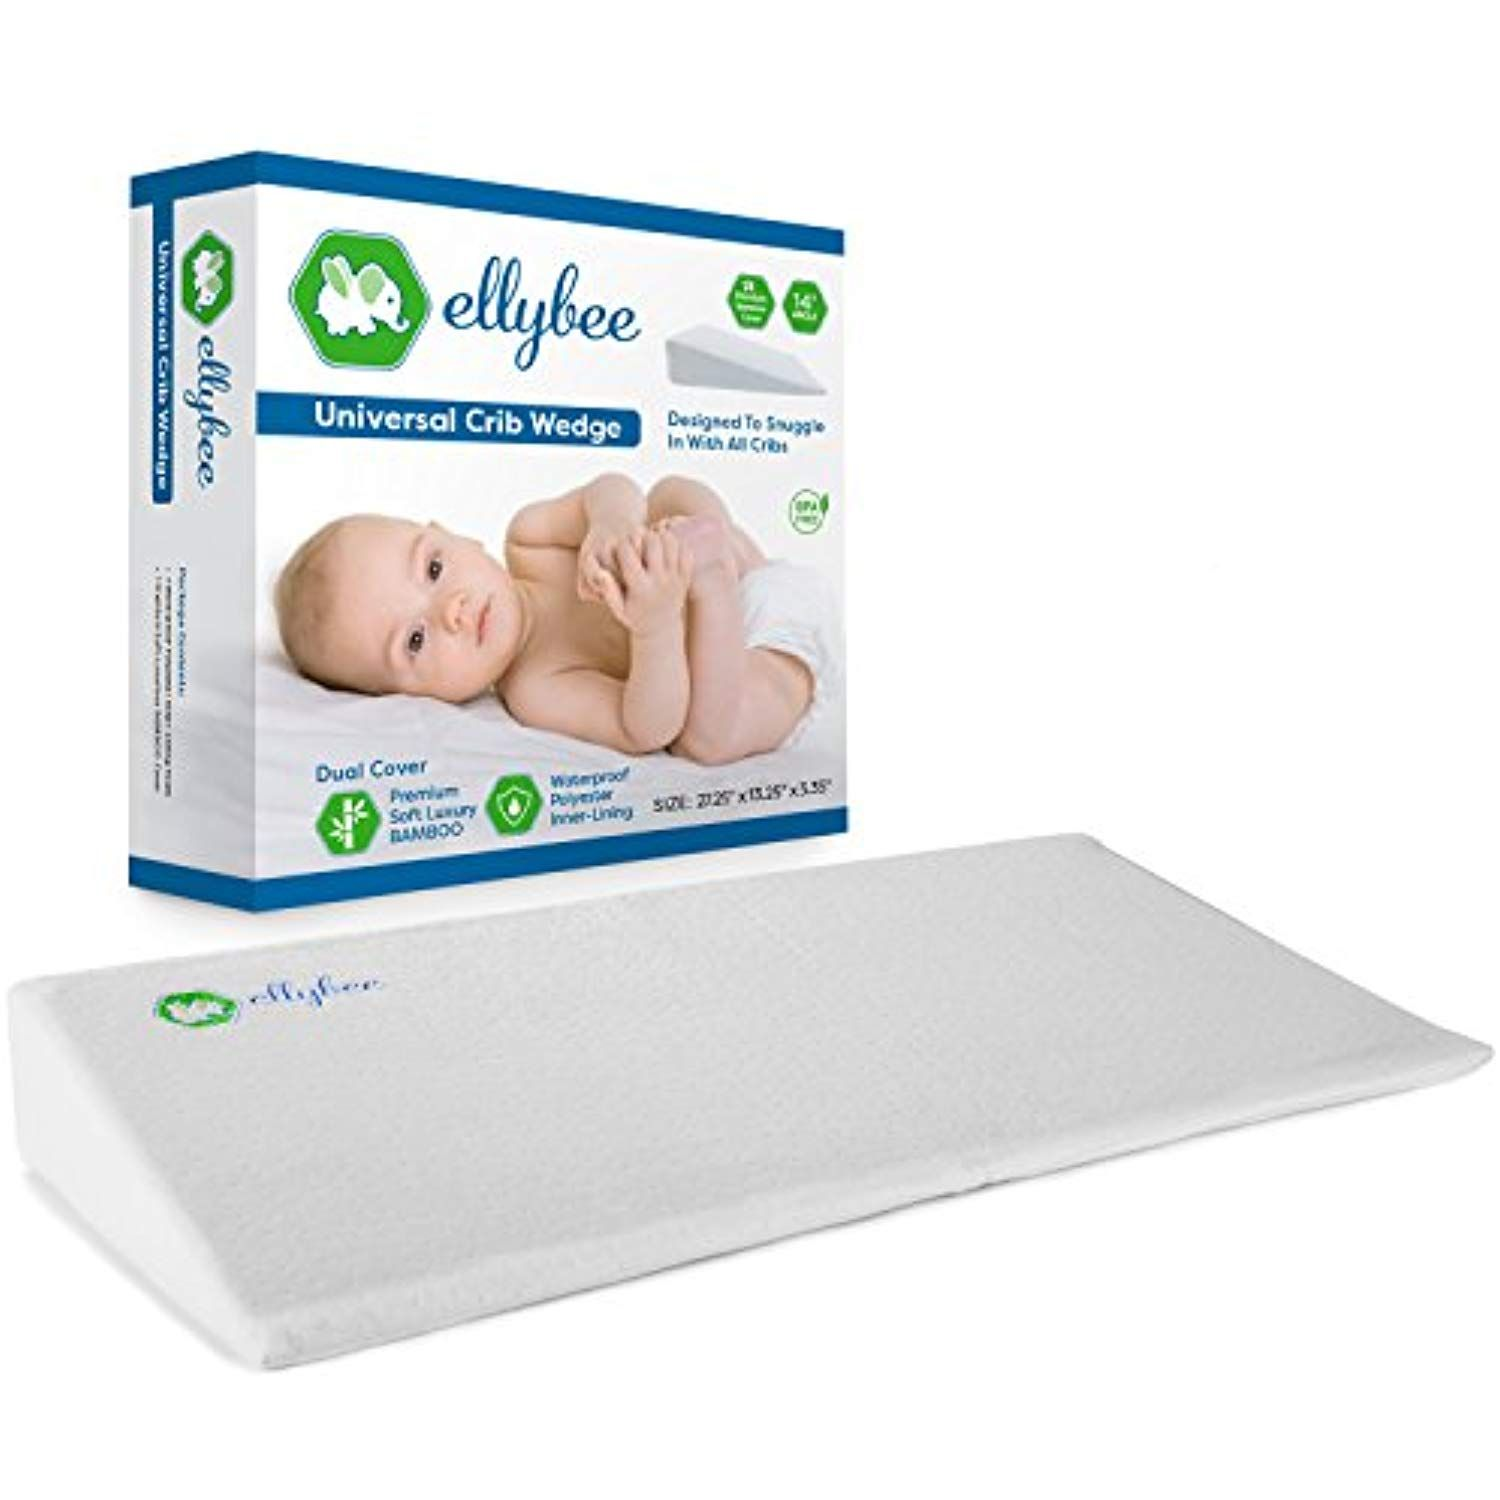 Baby Schlafkissen Ellybee Universal Crib Wedge Pillow For Baby Crib Mattress Acid